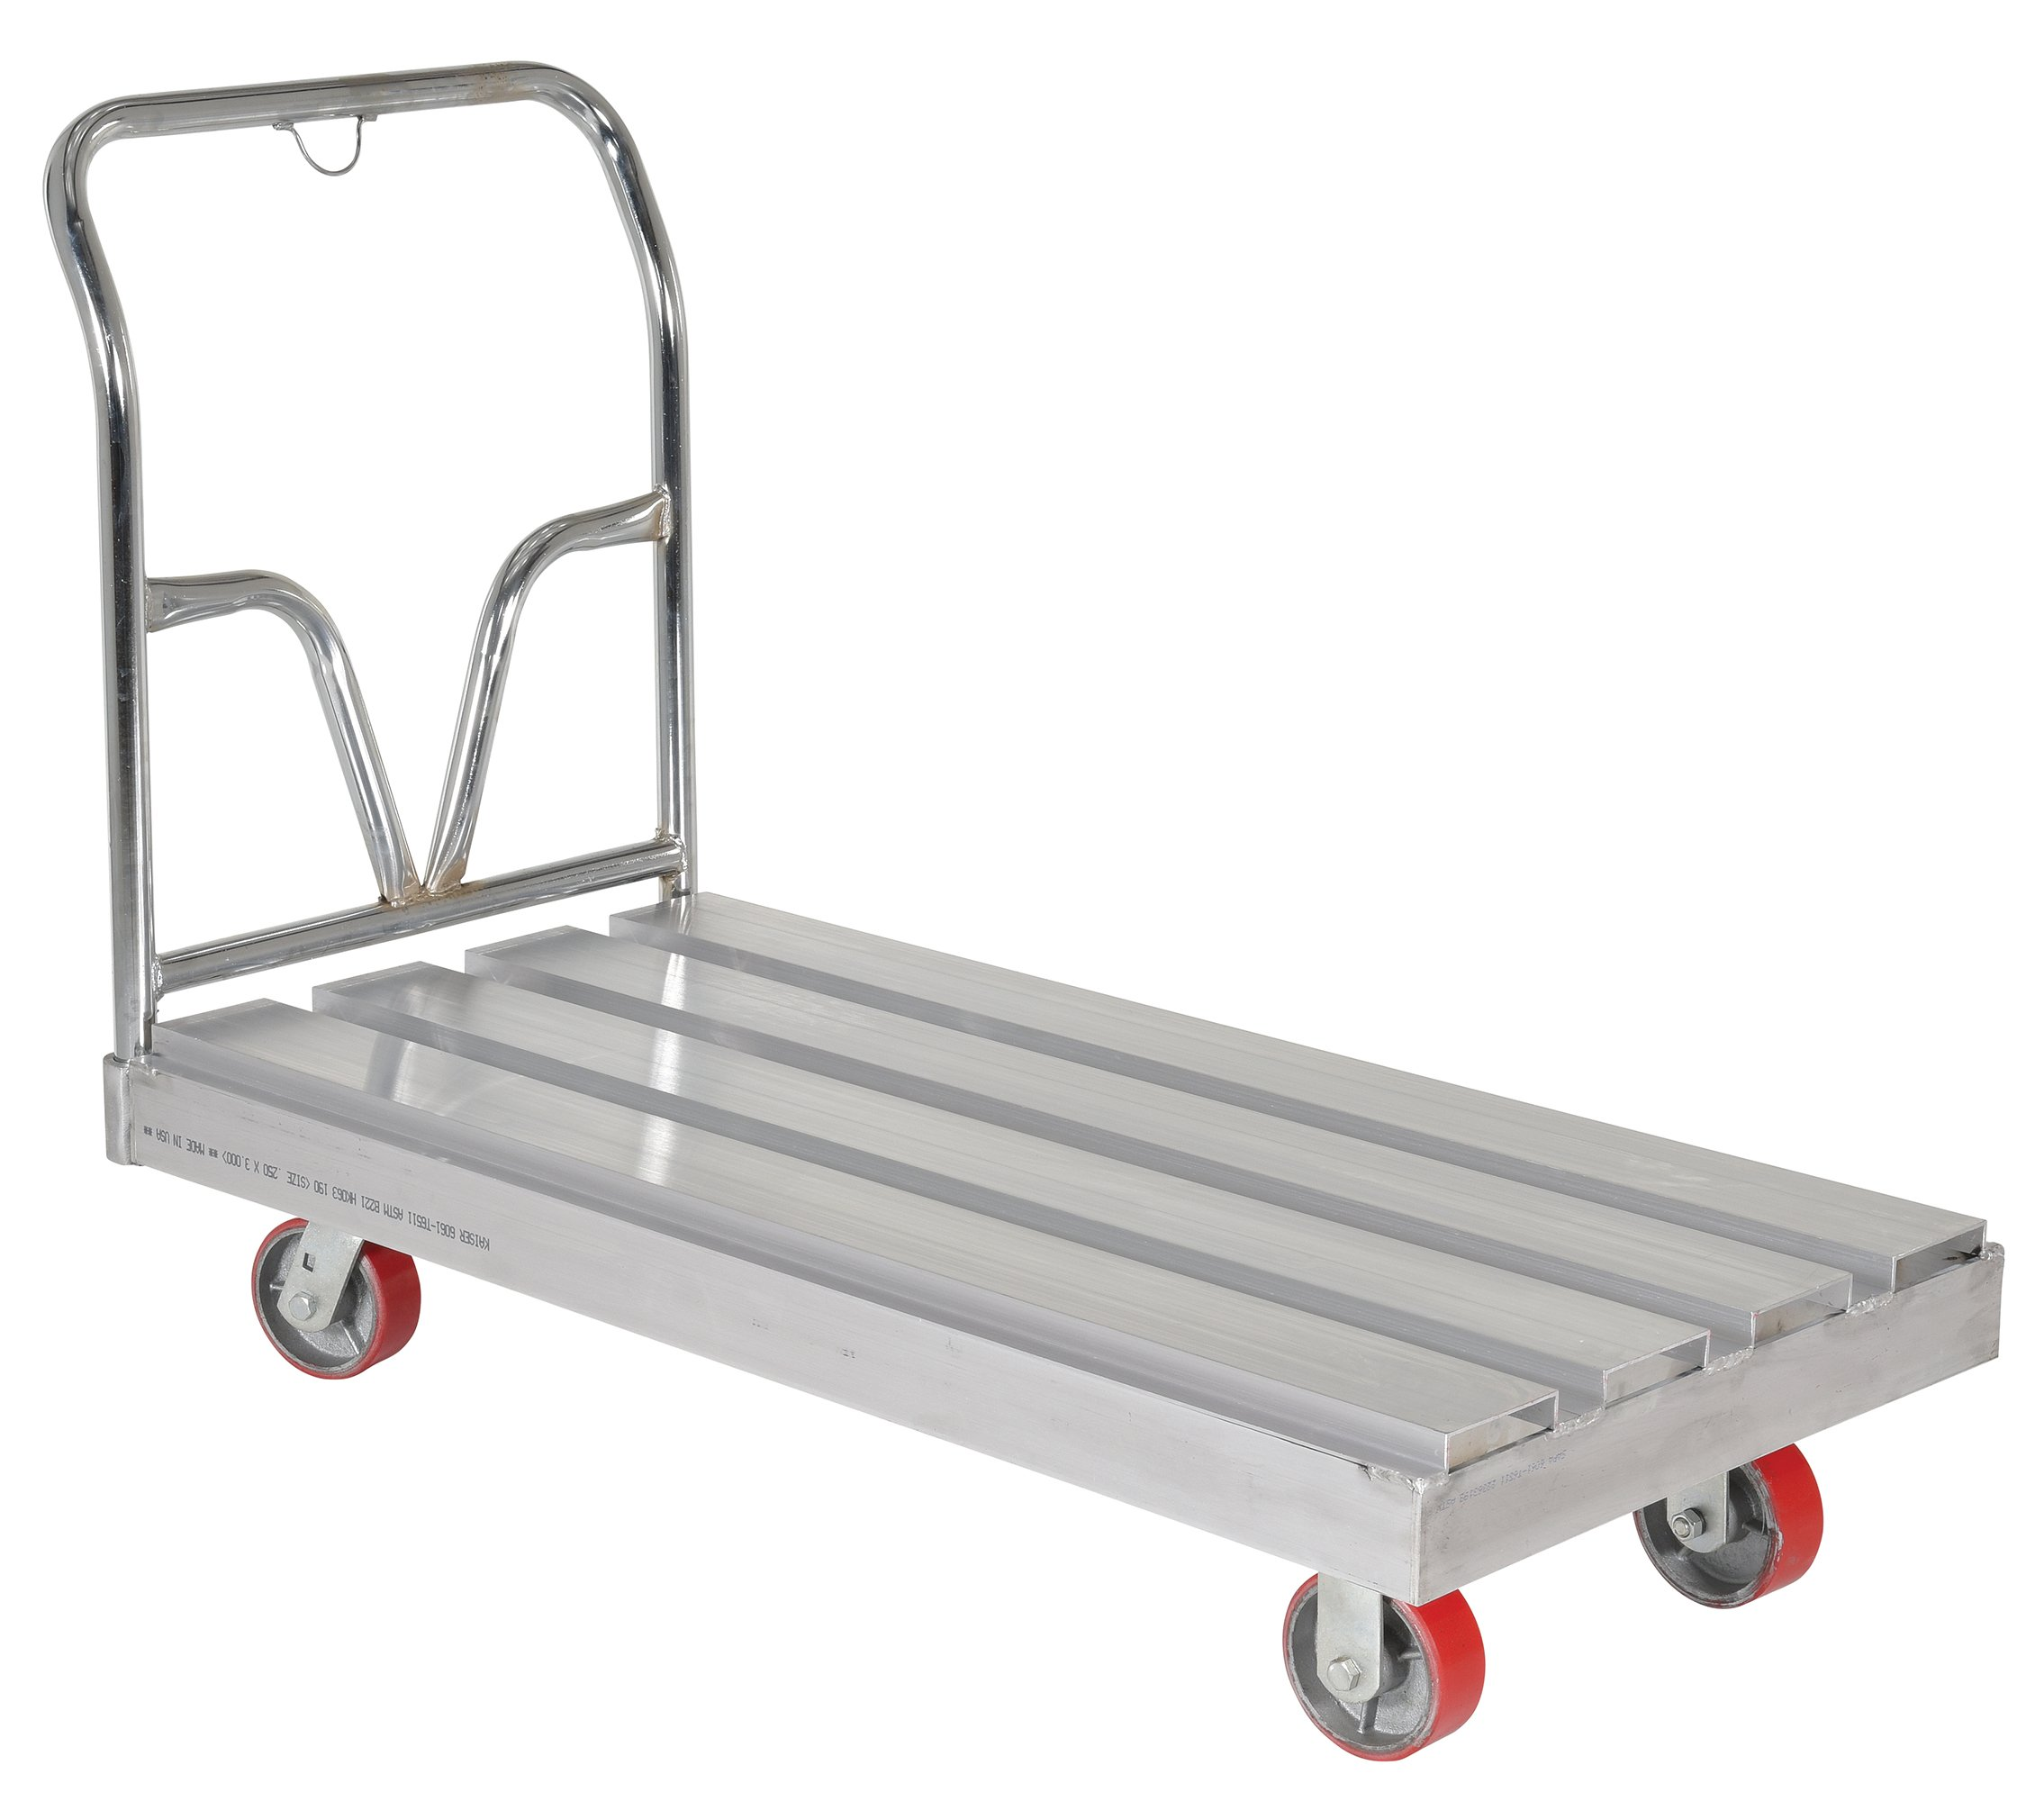 Vestil SDD-2448 Aluminum Platform Truck, 3600 lb Capacity, 10-5/8'' Deck Height, 23-1/4'' Handle Width, 5'' x 2'' Poly-on-Steel Casters, 24'' x 48''